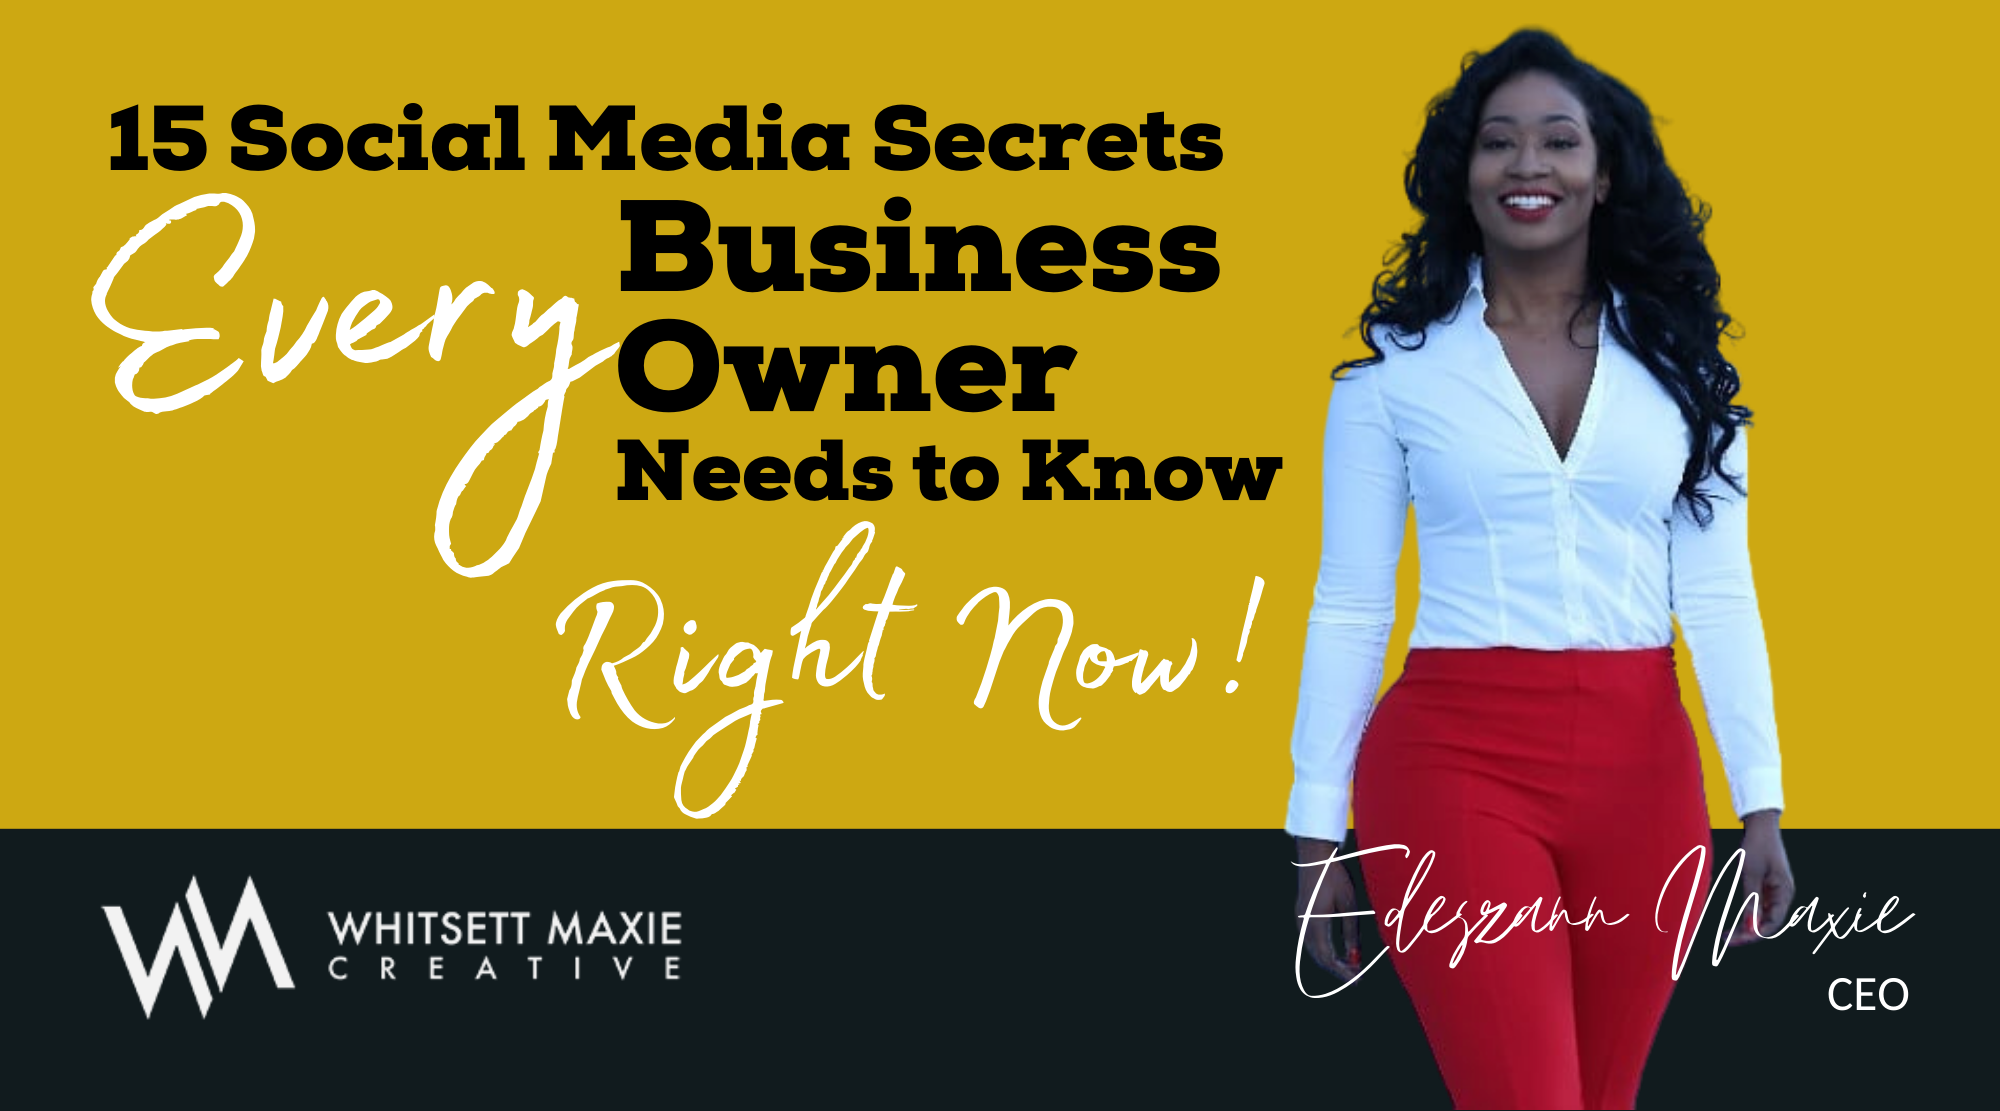 15 Social Media Secrets Every Business Owner Needs To Know Right Now